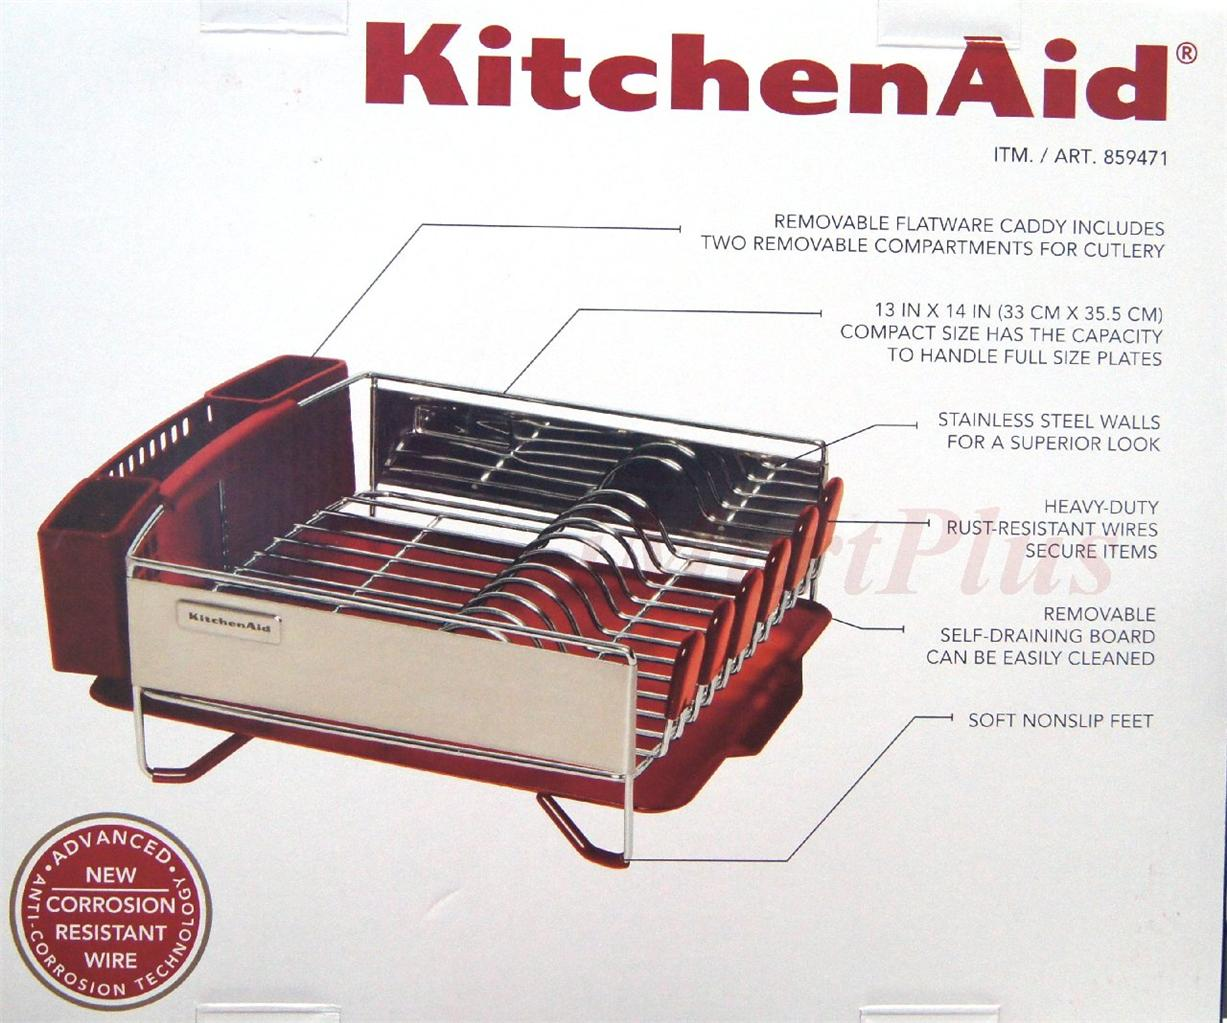 Kitchen aid kitchenaid 3 pc dish cup holder plate drying drainer rack set red ebay - Kitchenaid dish rack red ...